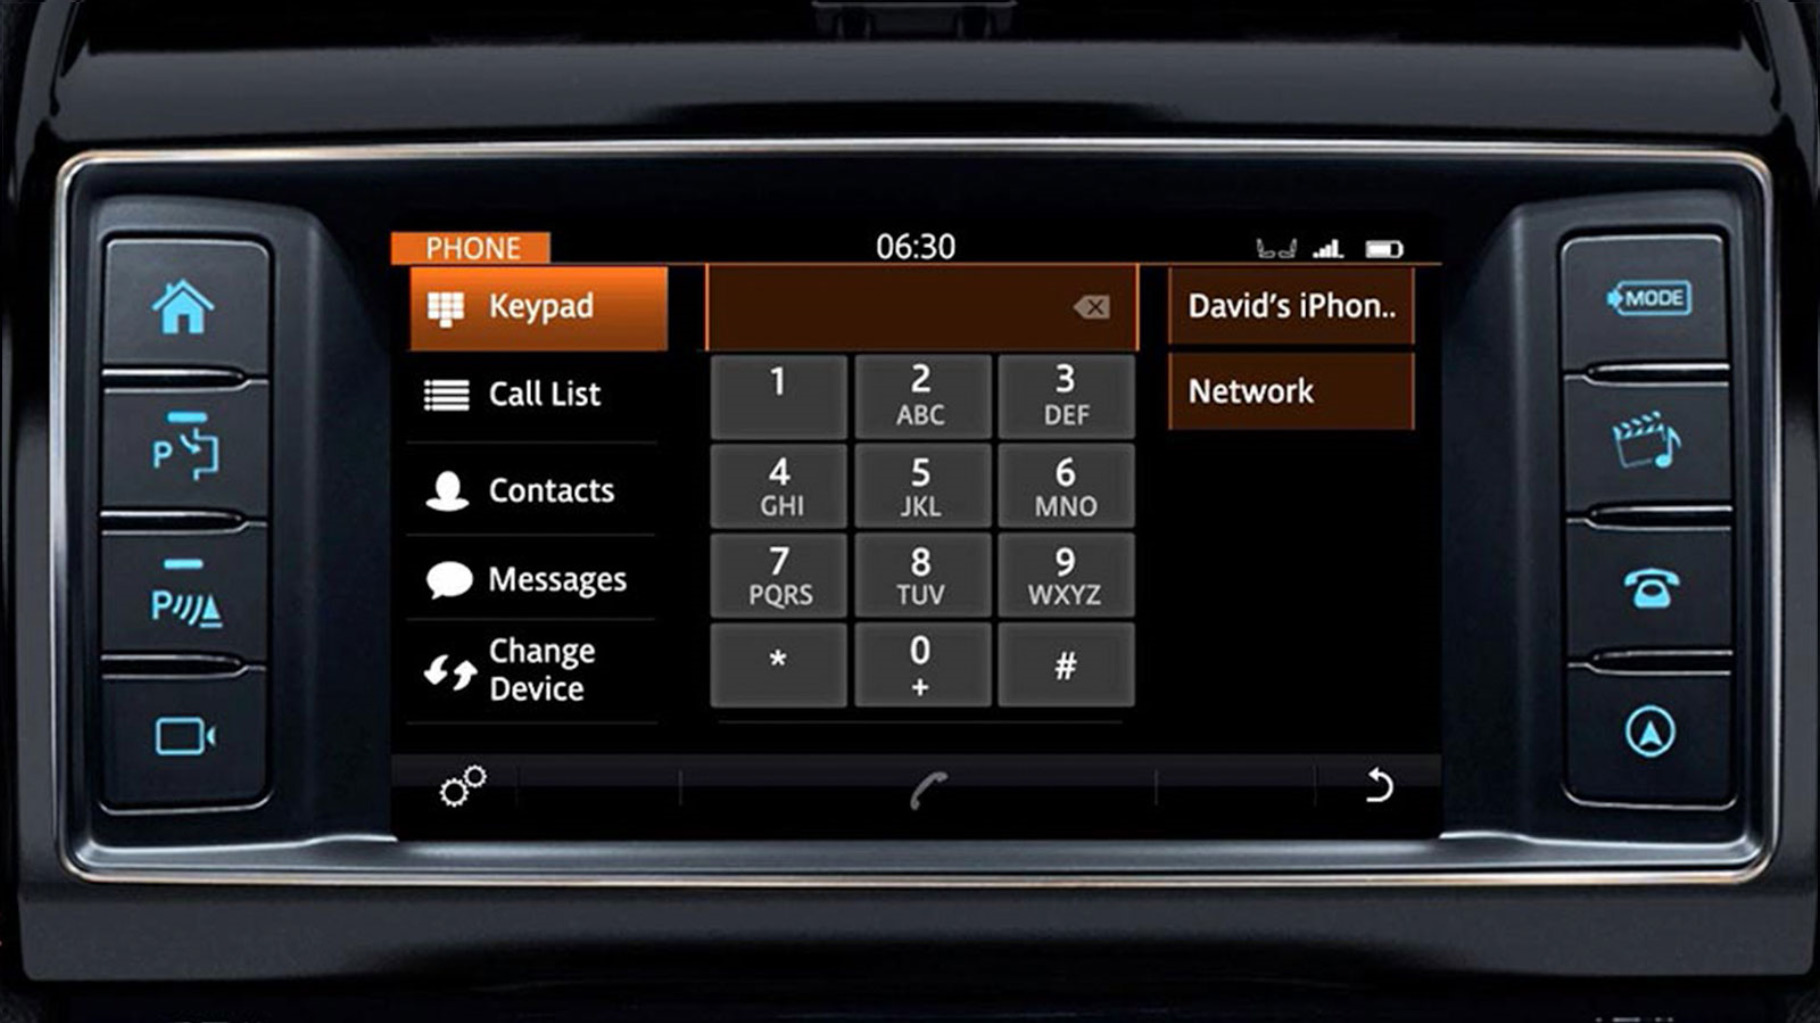 Jaguar F-PACE's InControl Touch: Bluetooth Phone Operation information video.